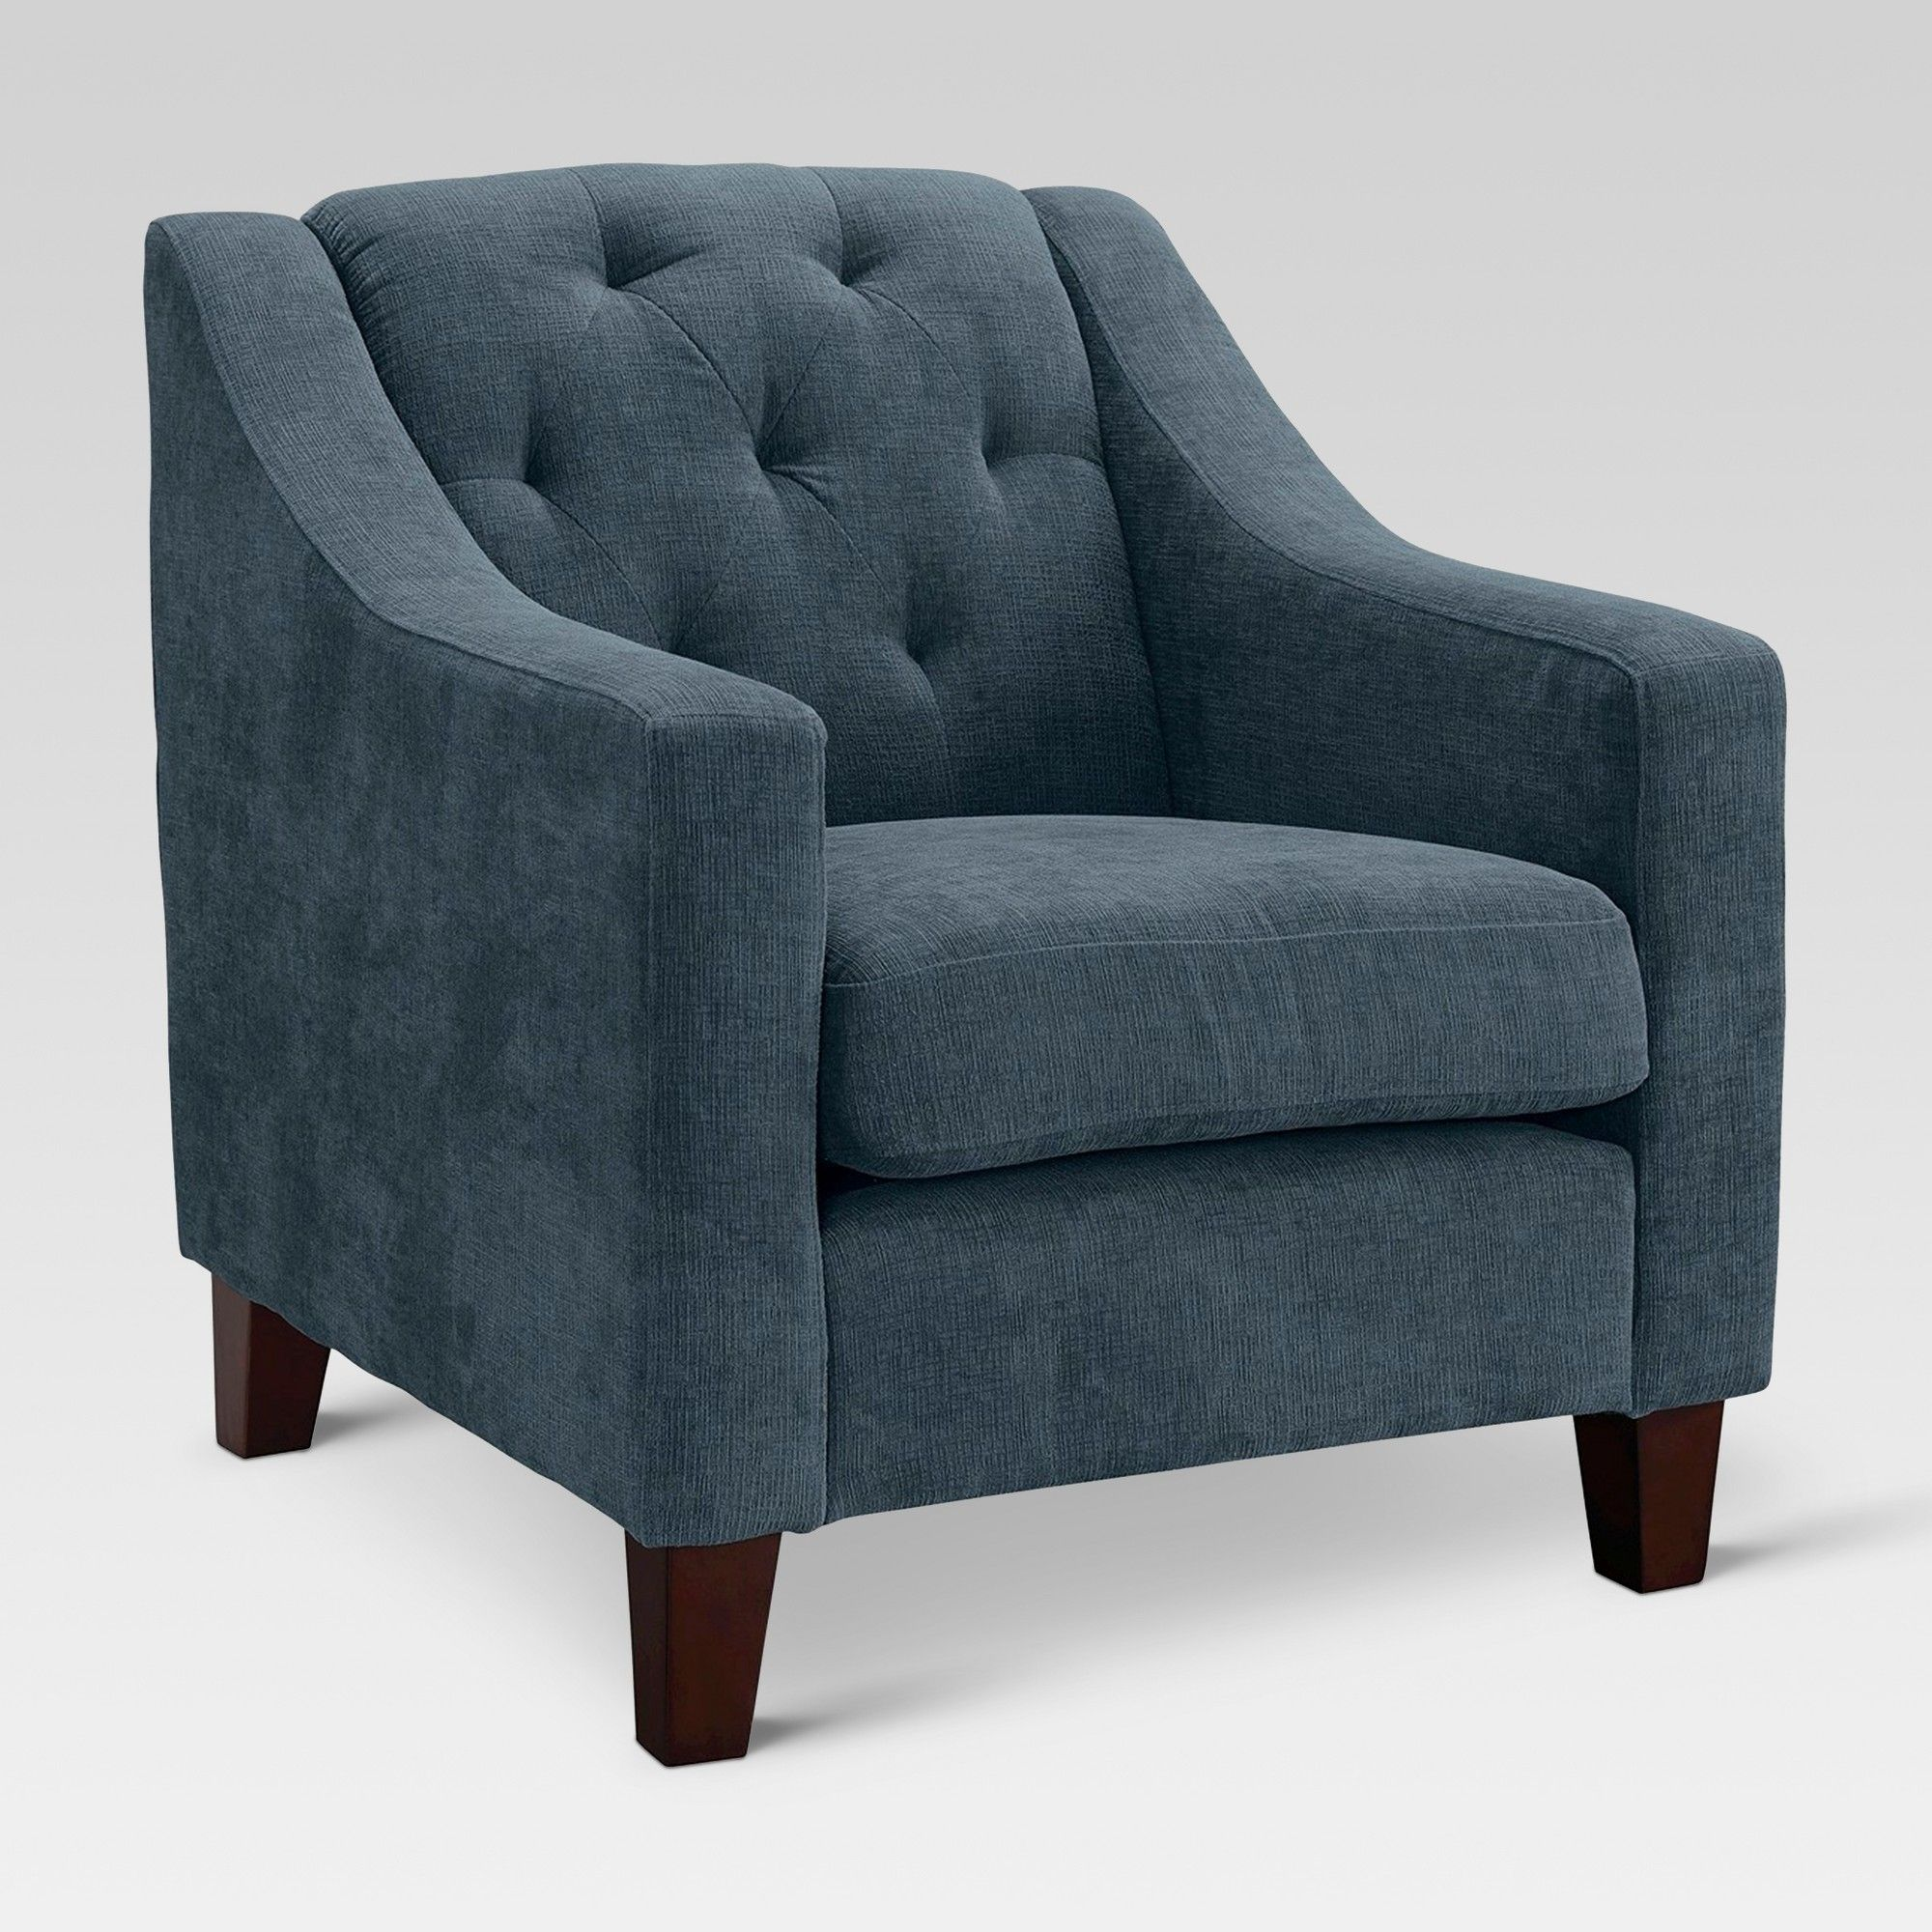 Best Felton Tufted Chair Threshold Blue Tufted Chair 400 x 300